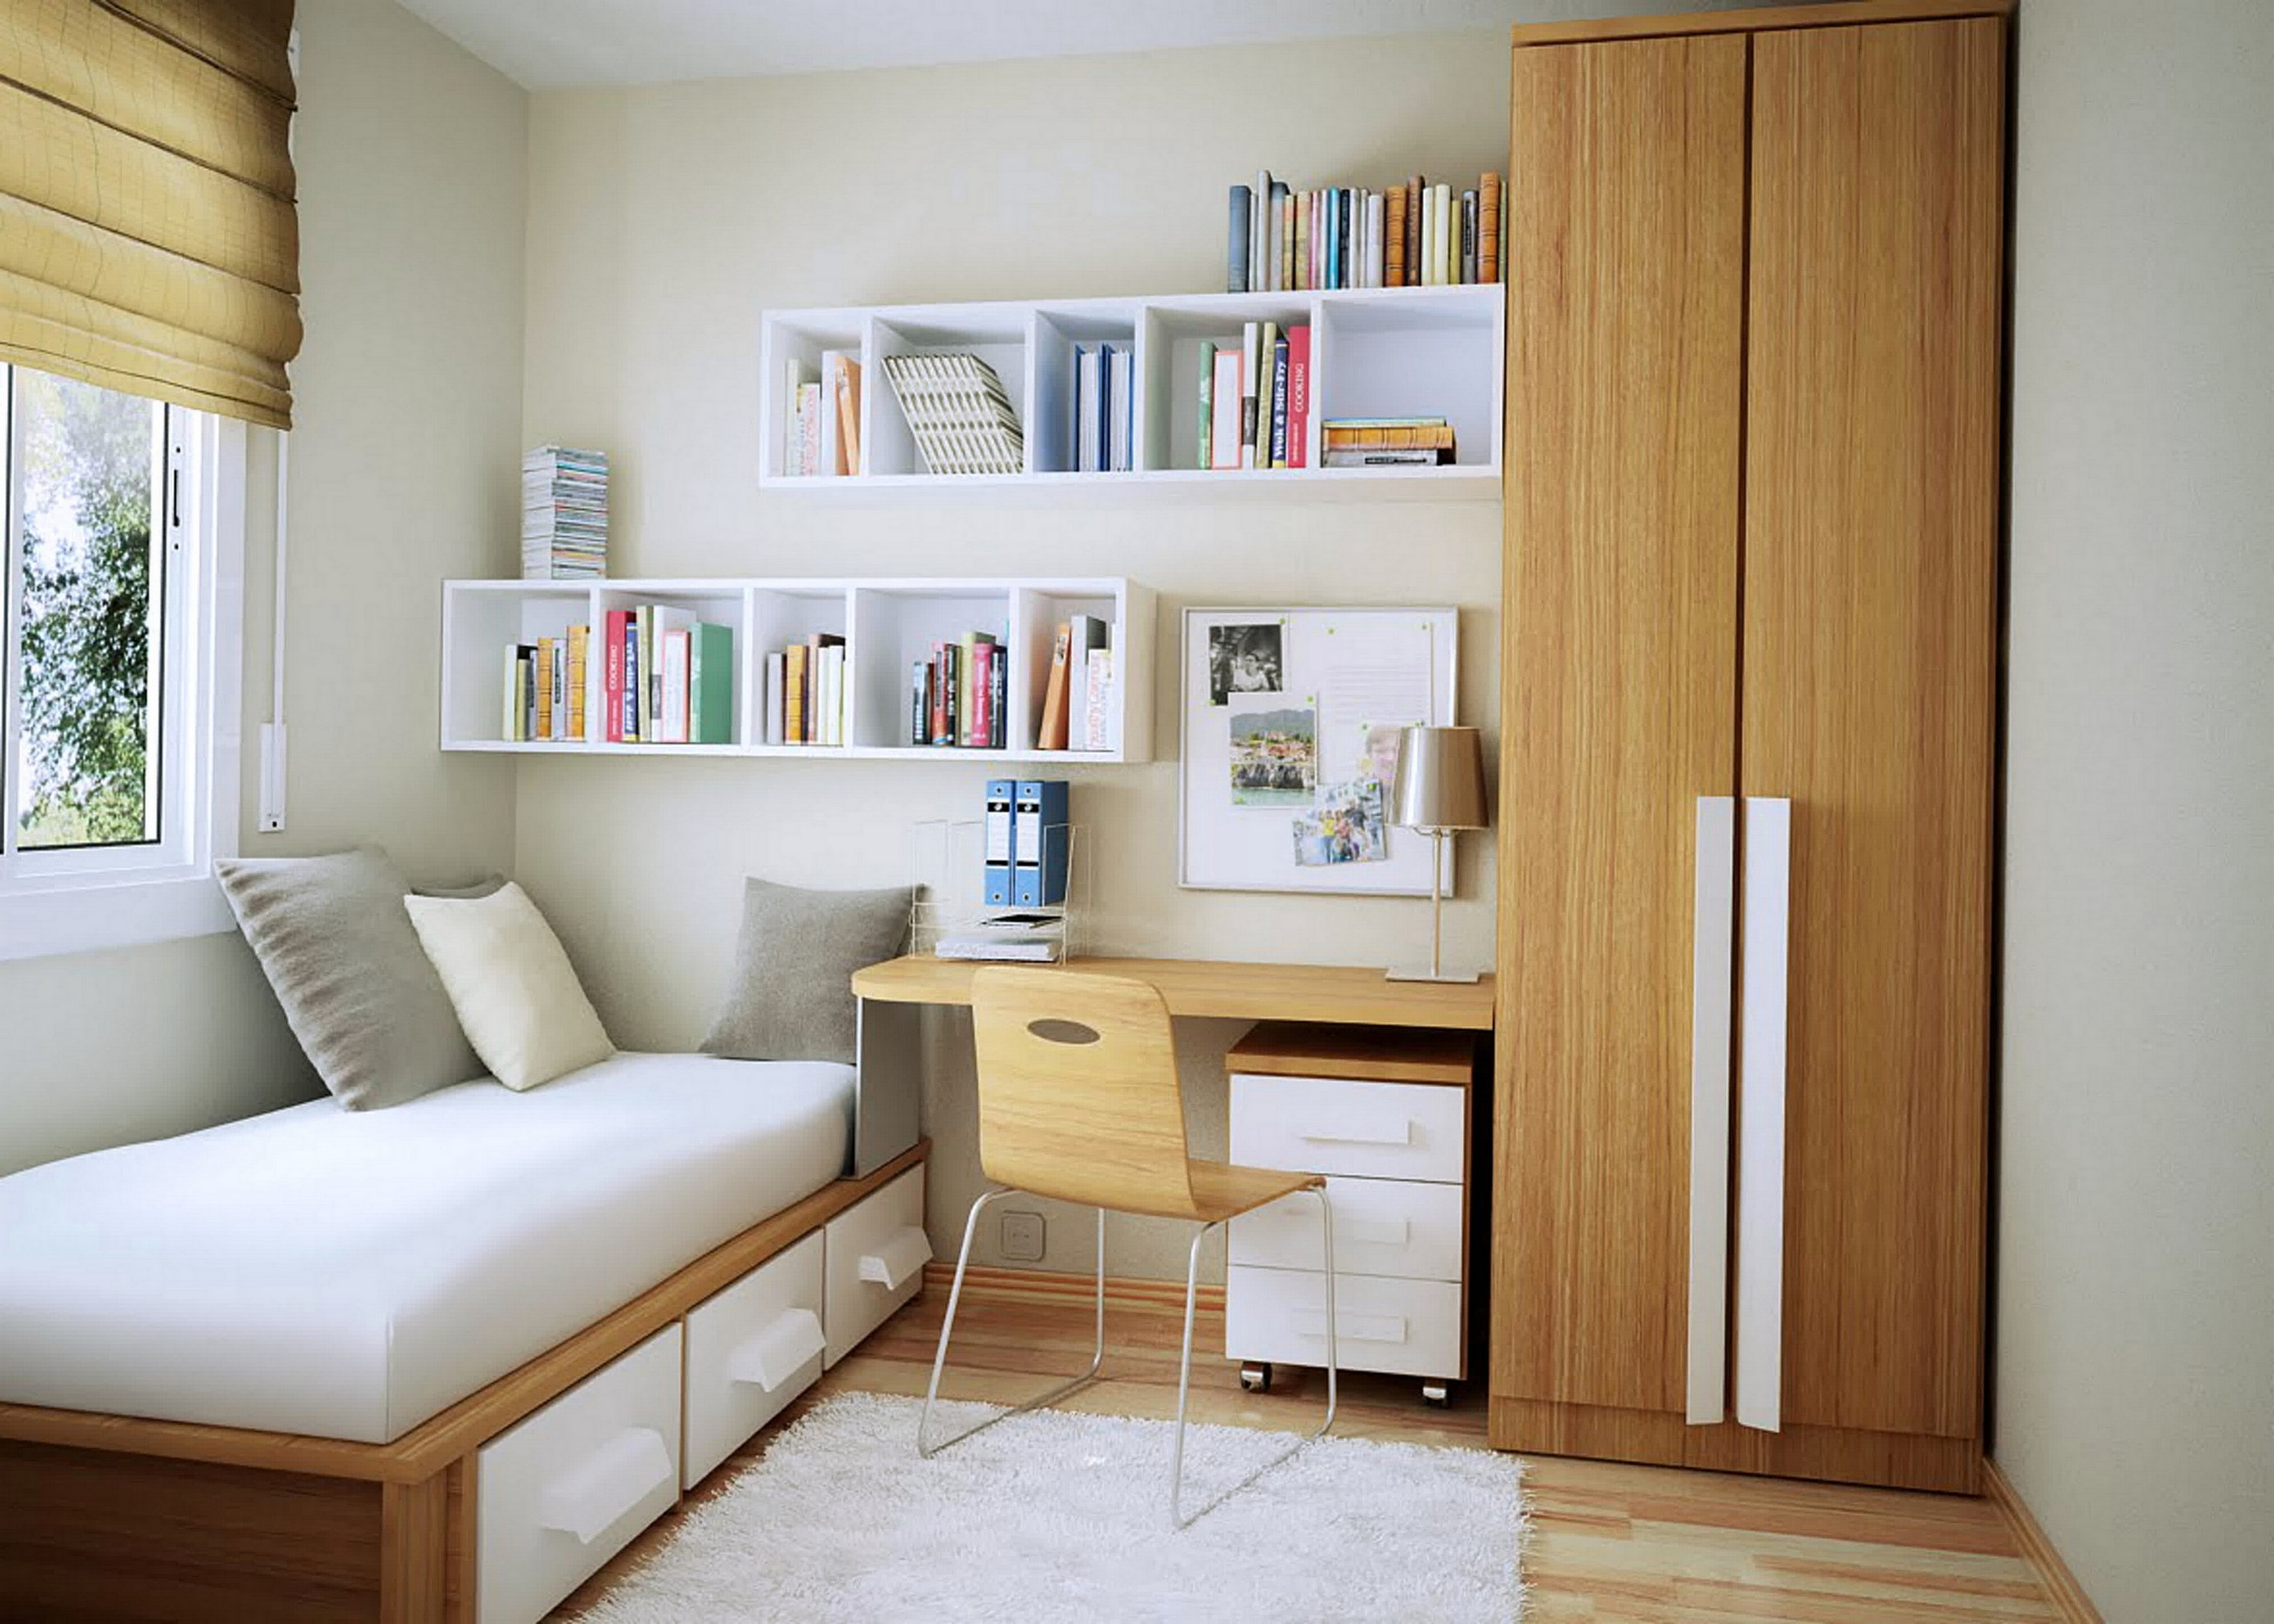 Simple Bedroom Ideas Small Spaces Top Ideas | ArchitectureIn